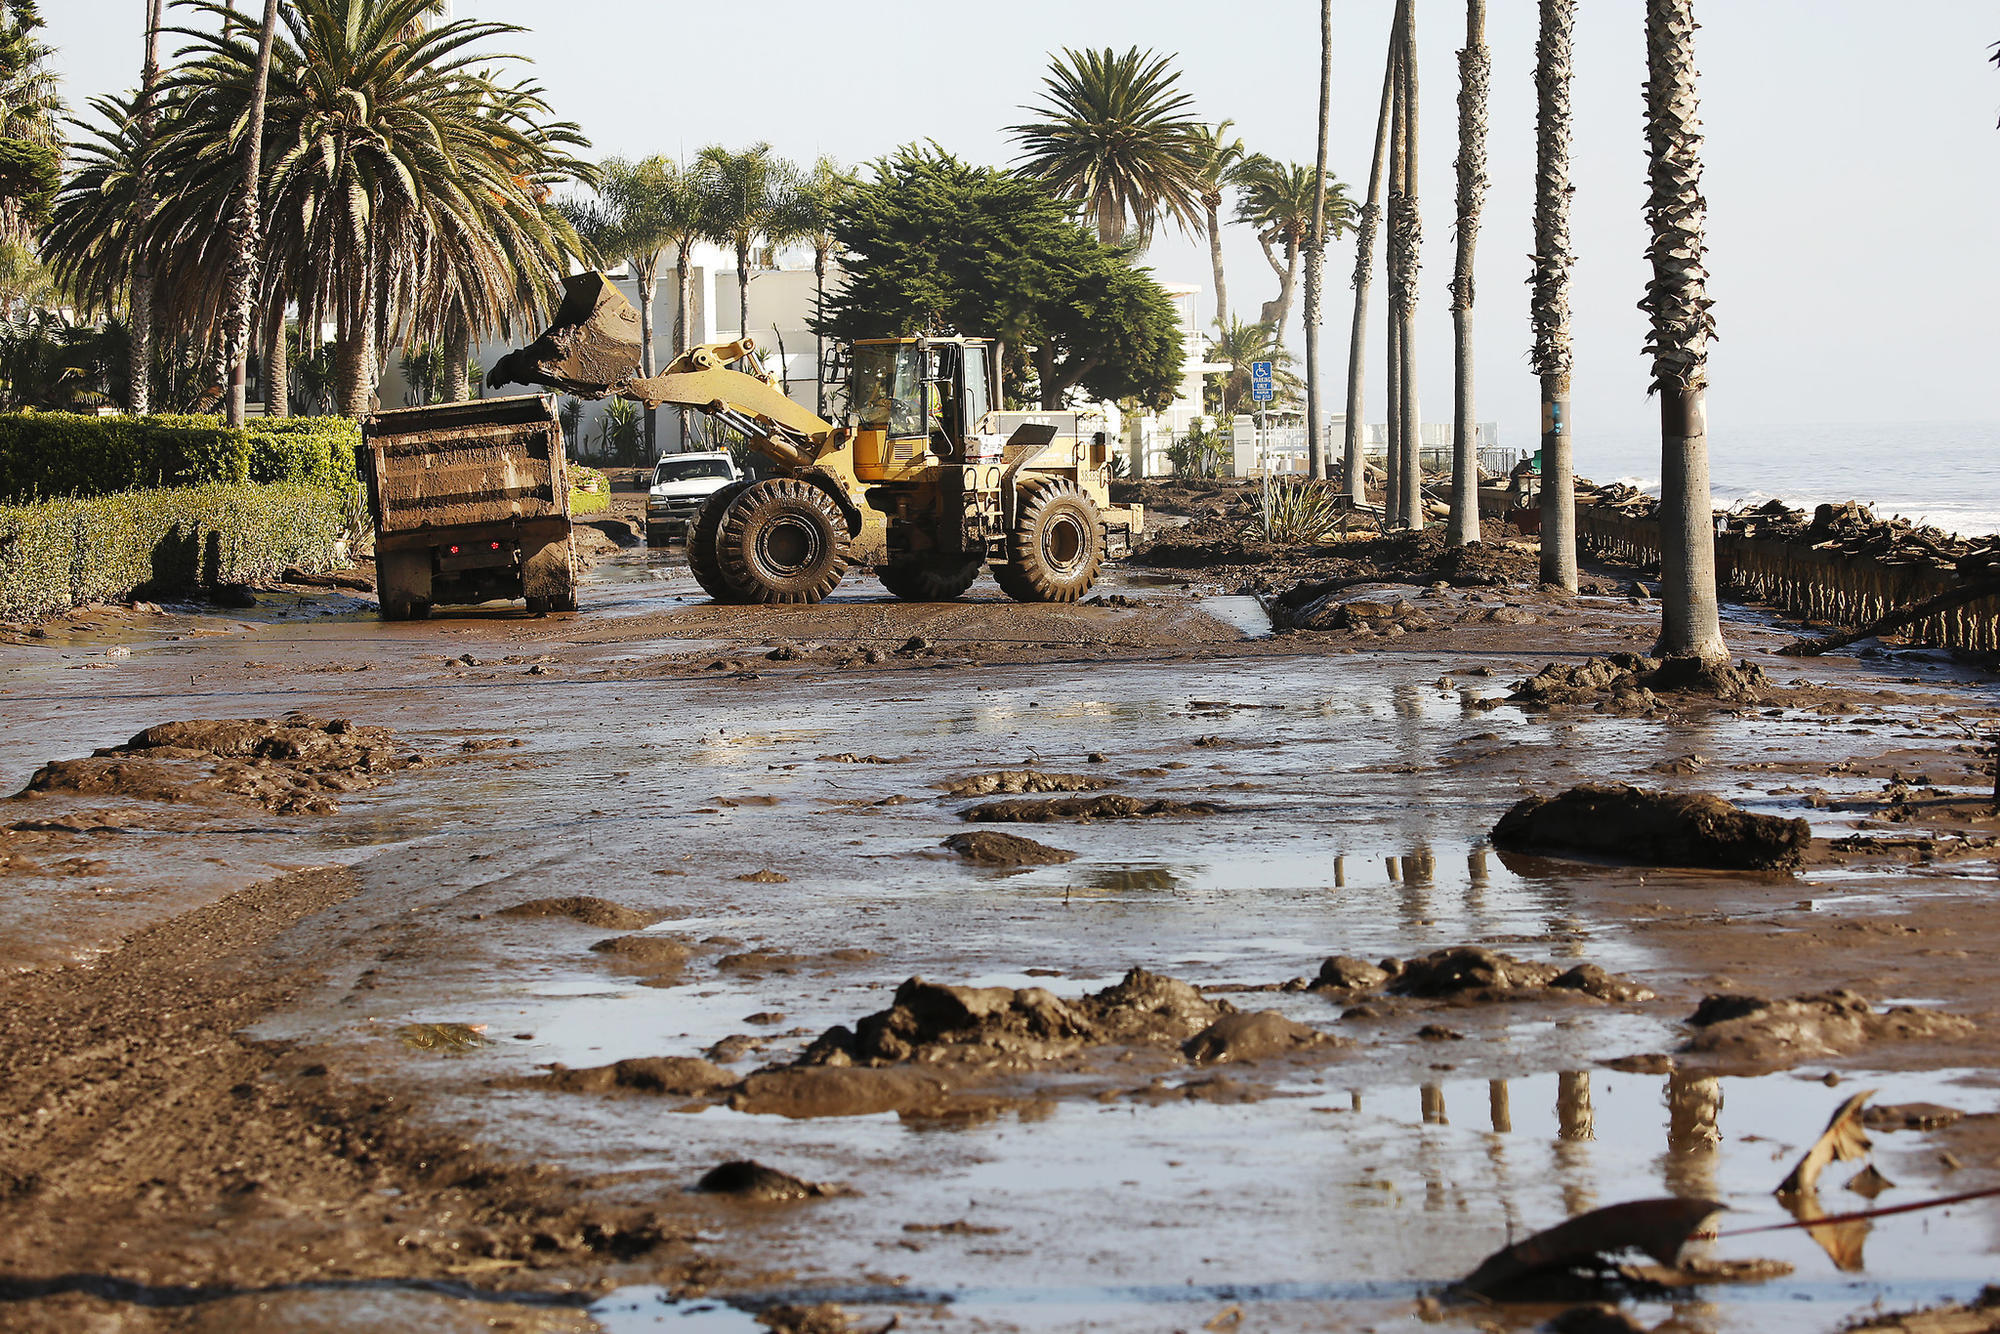 Montecito braced for fire, but mud was a more stealthy, deadly threat